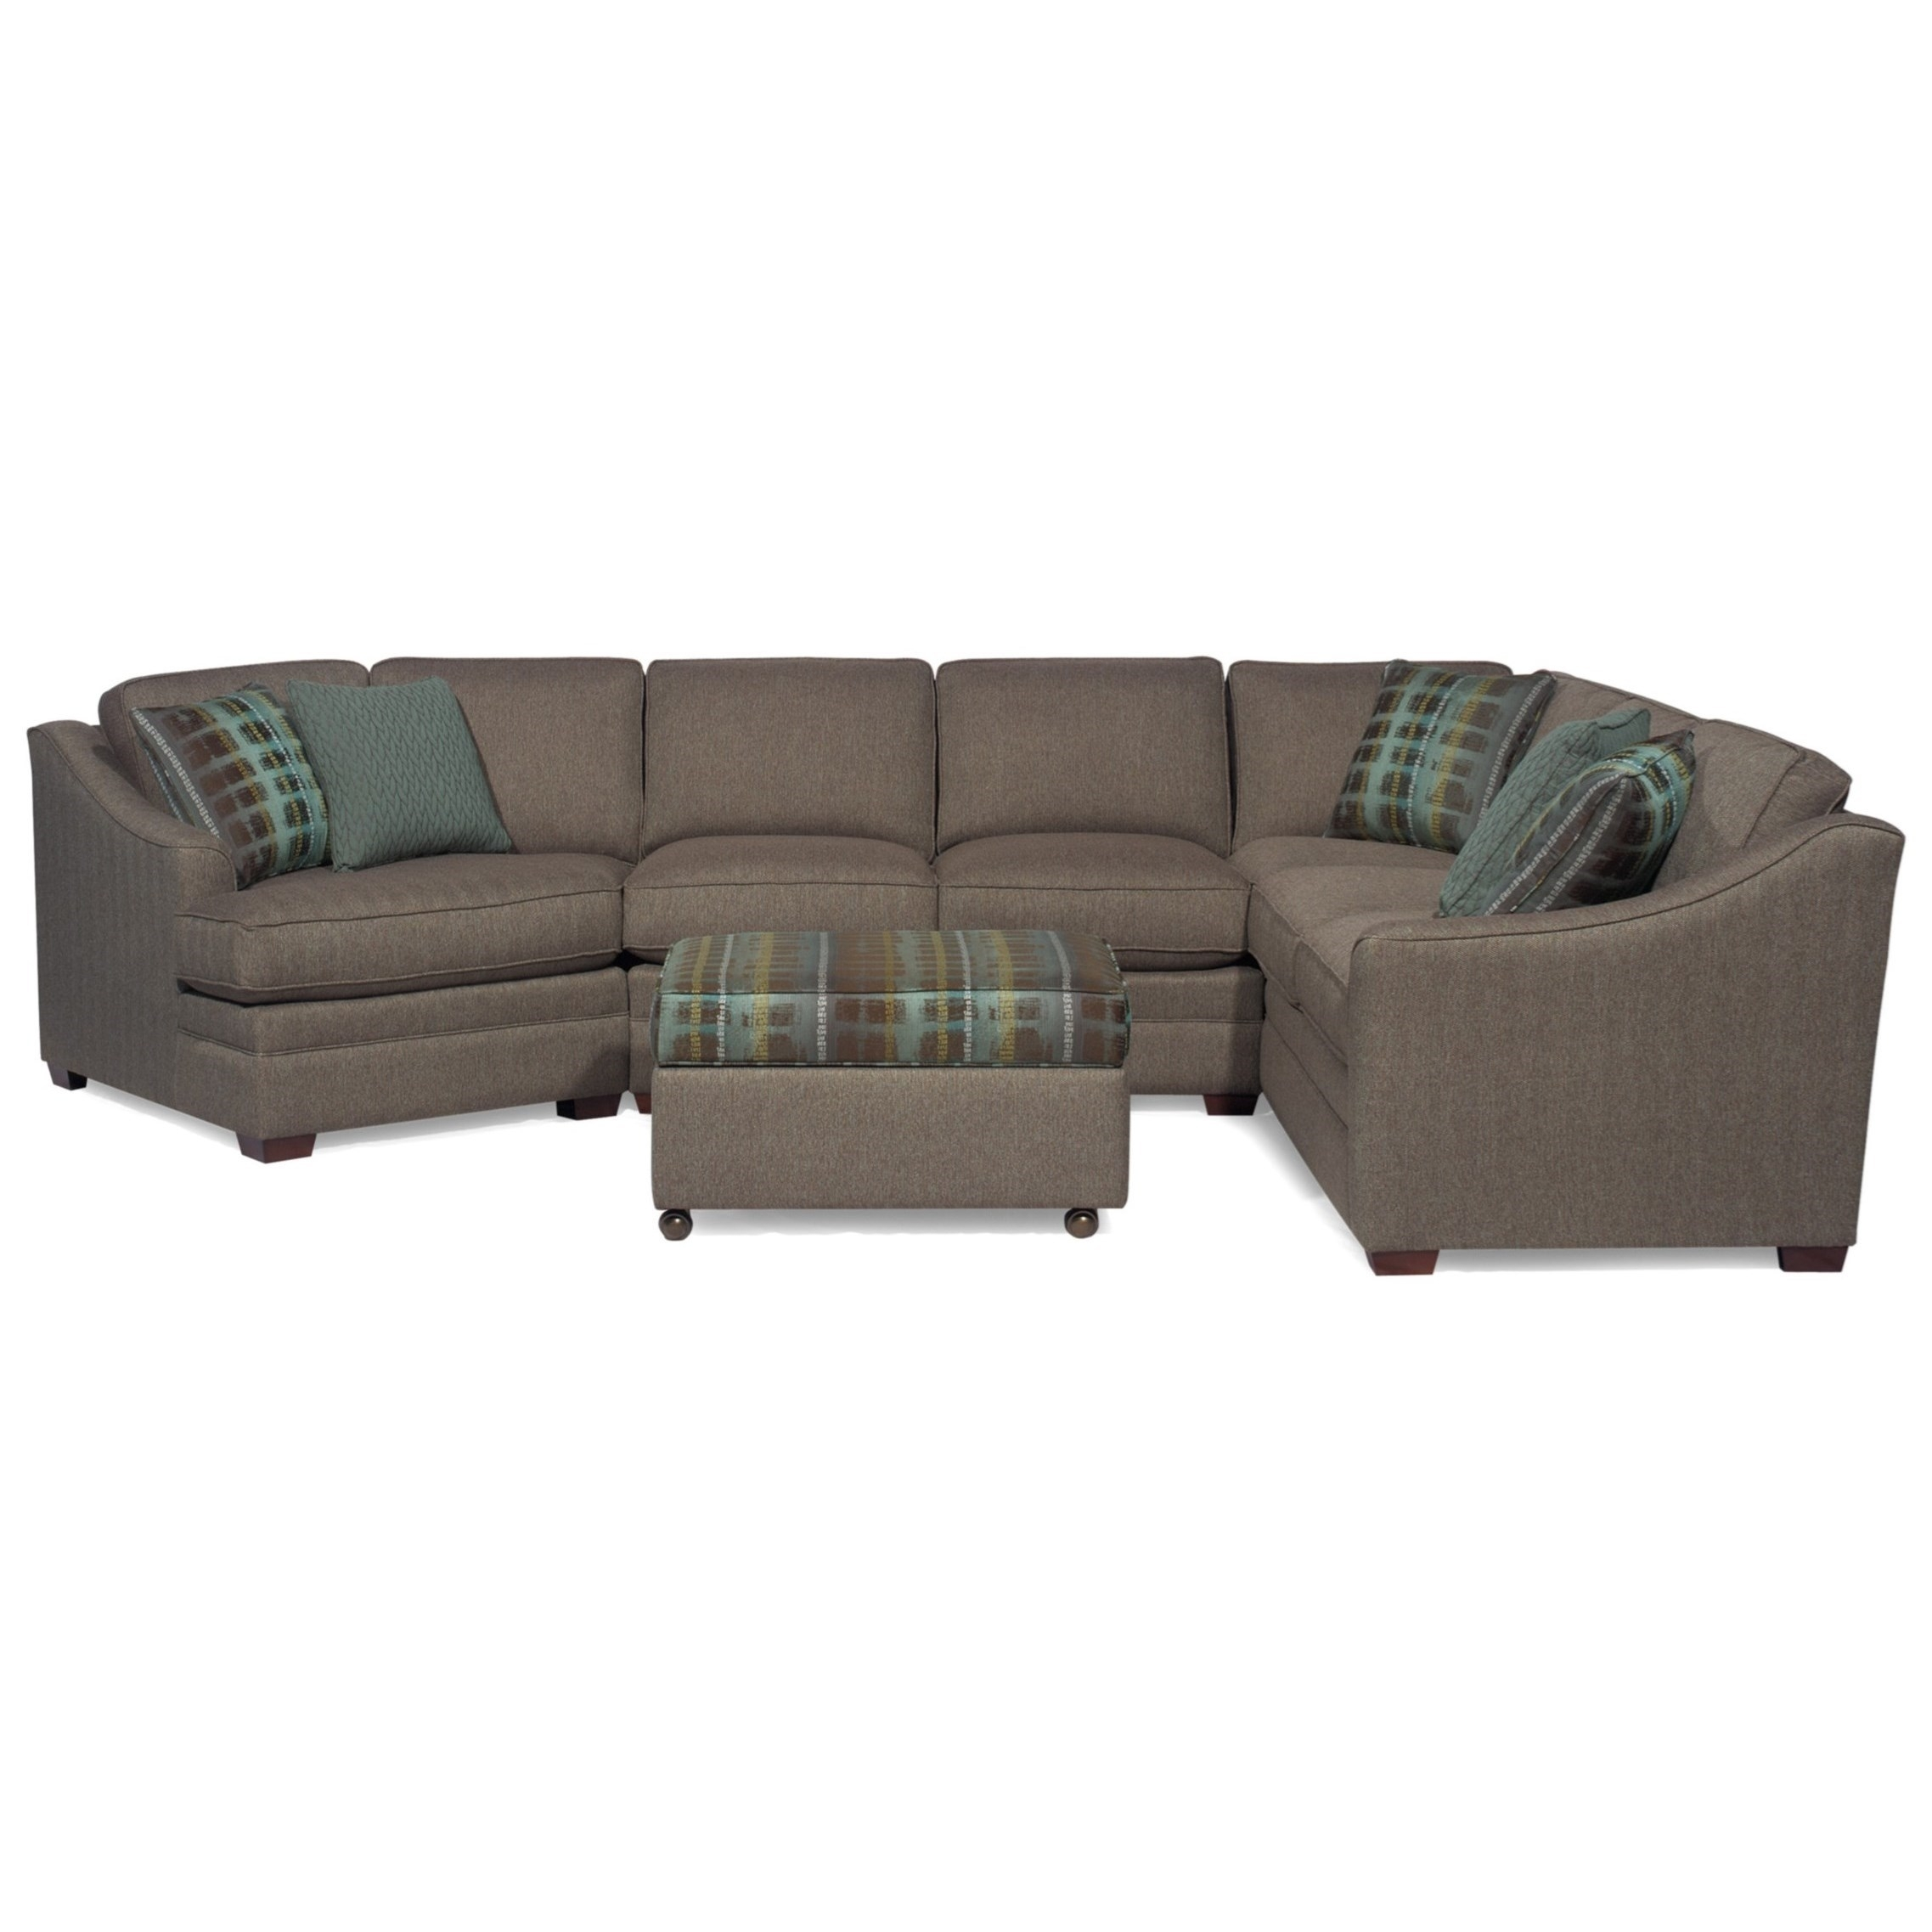 Hickory Craft F9 Custom Collection <B>Customizable</b> 3 Piece Throughout Avery 2 Piece Sectionals With Raf Armless Chaise (Image 14 of 25)